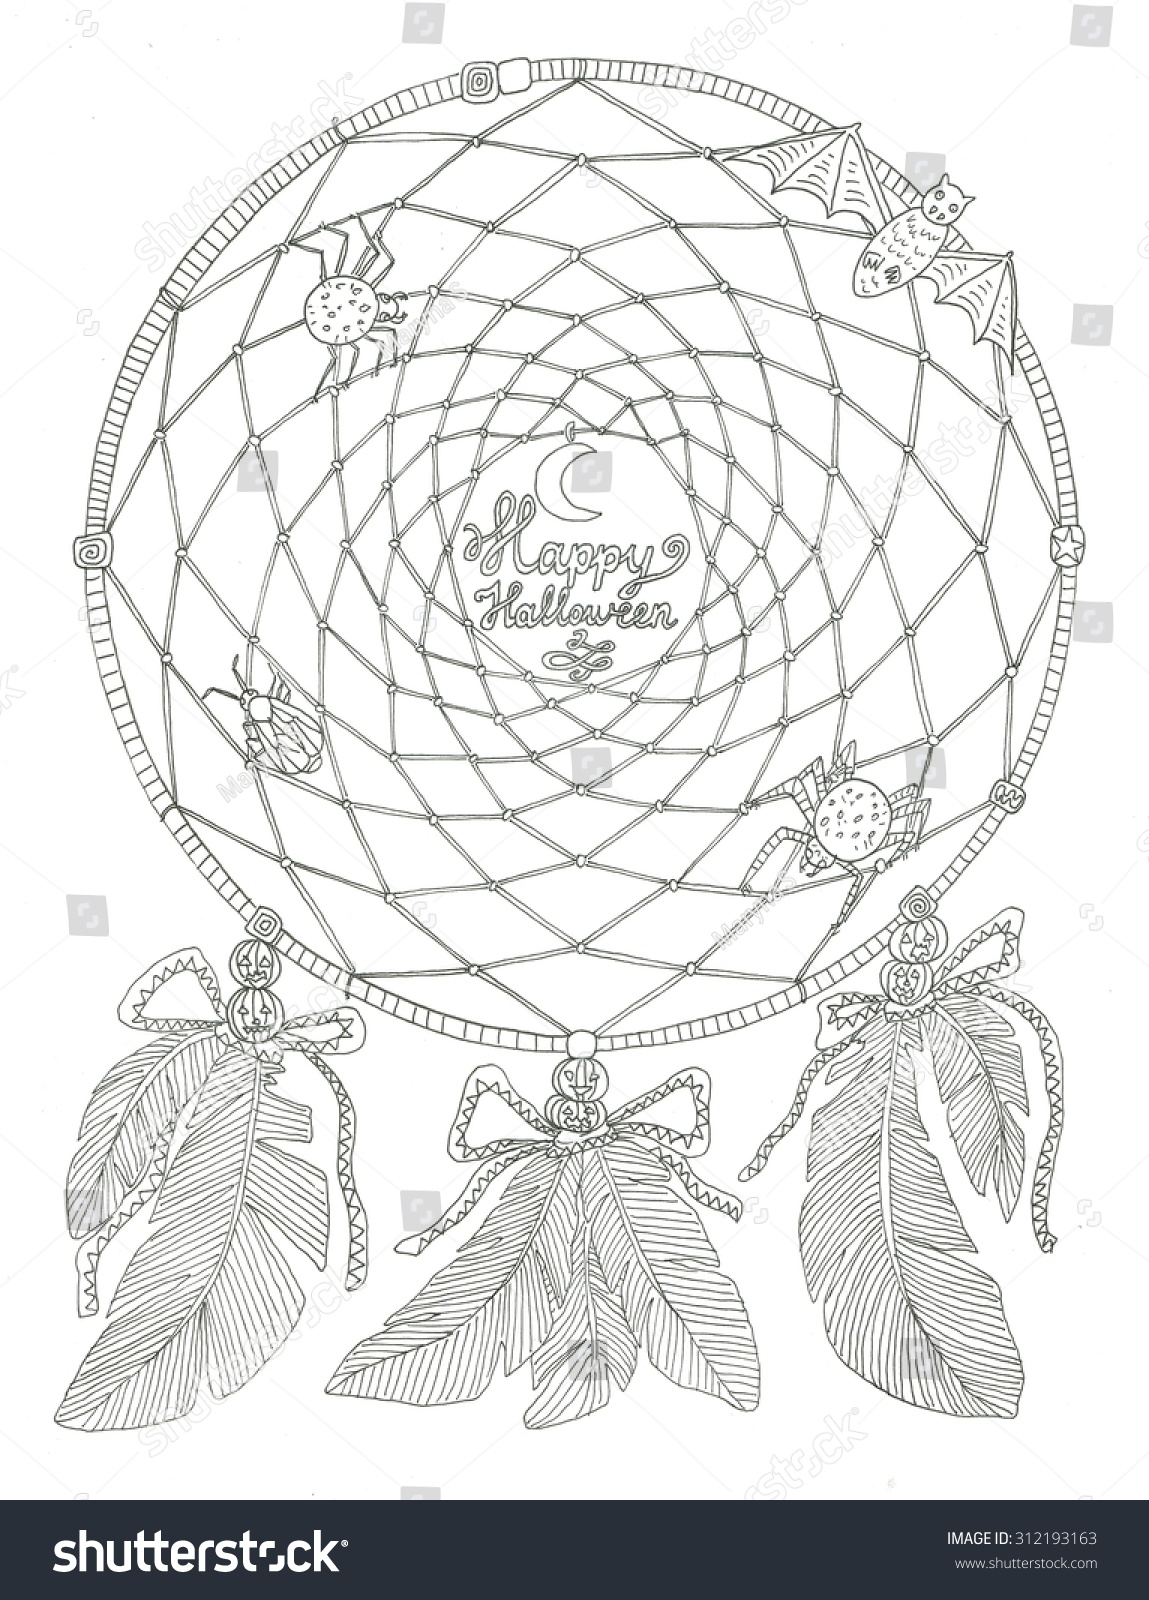 halloween dream catcher coloring page 312193163 - Dream Catcher Coloring Pages